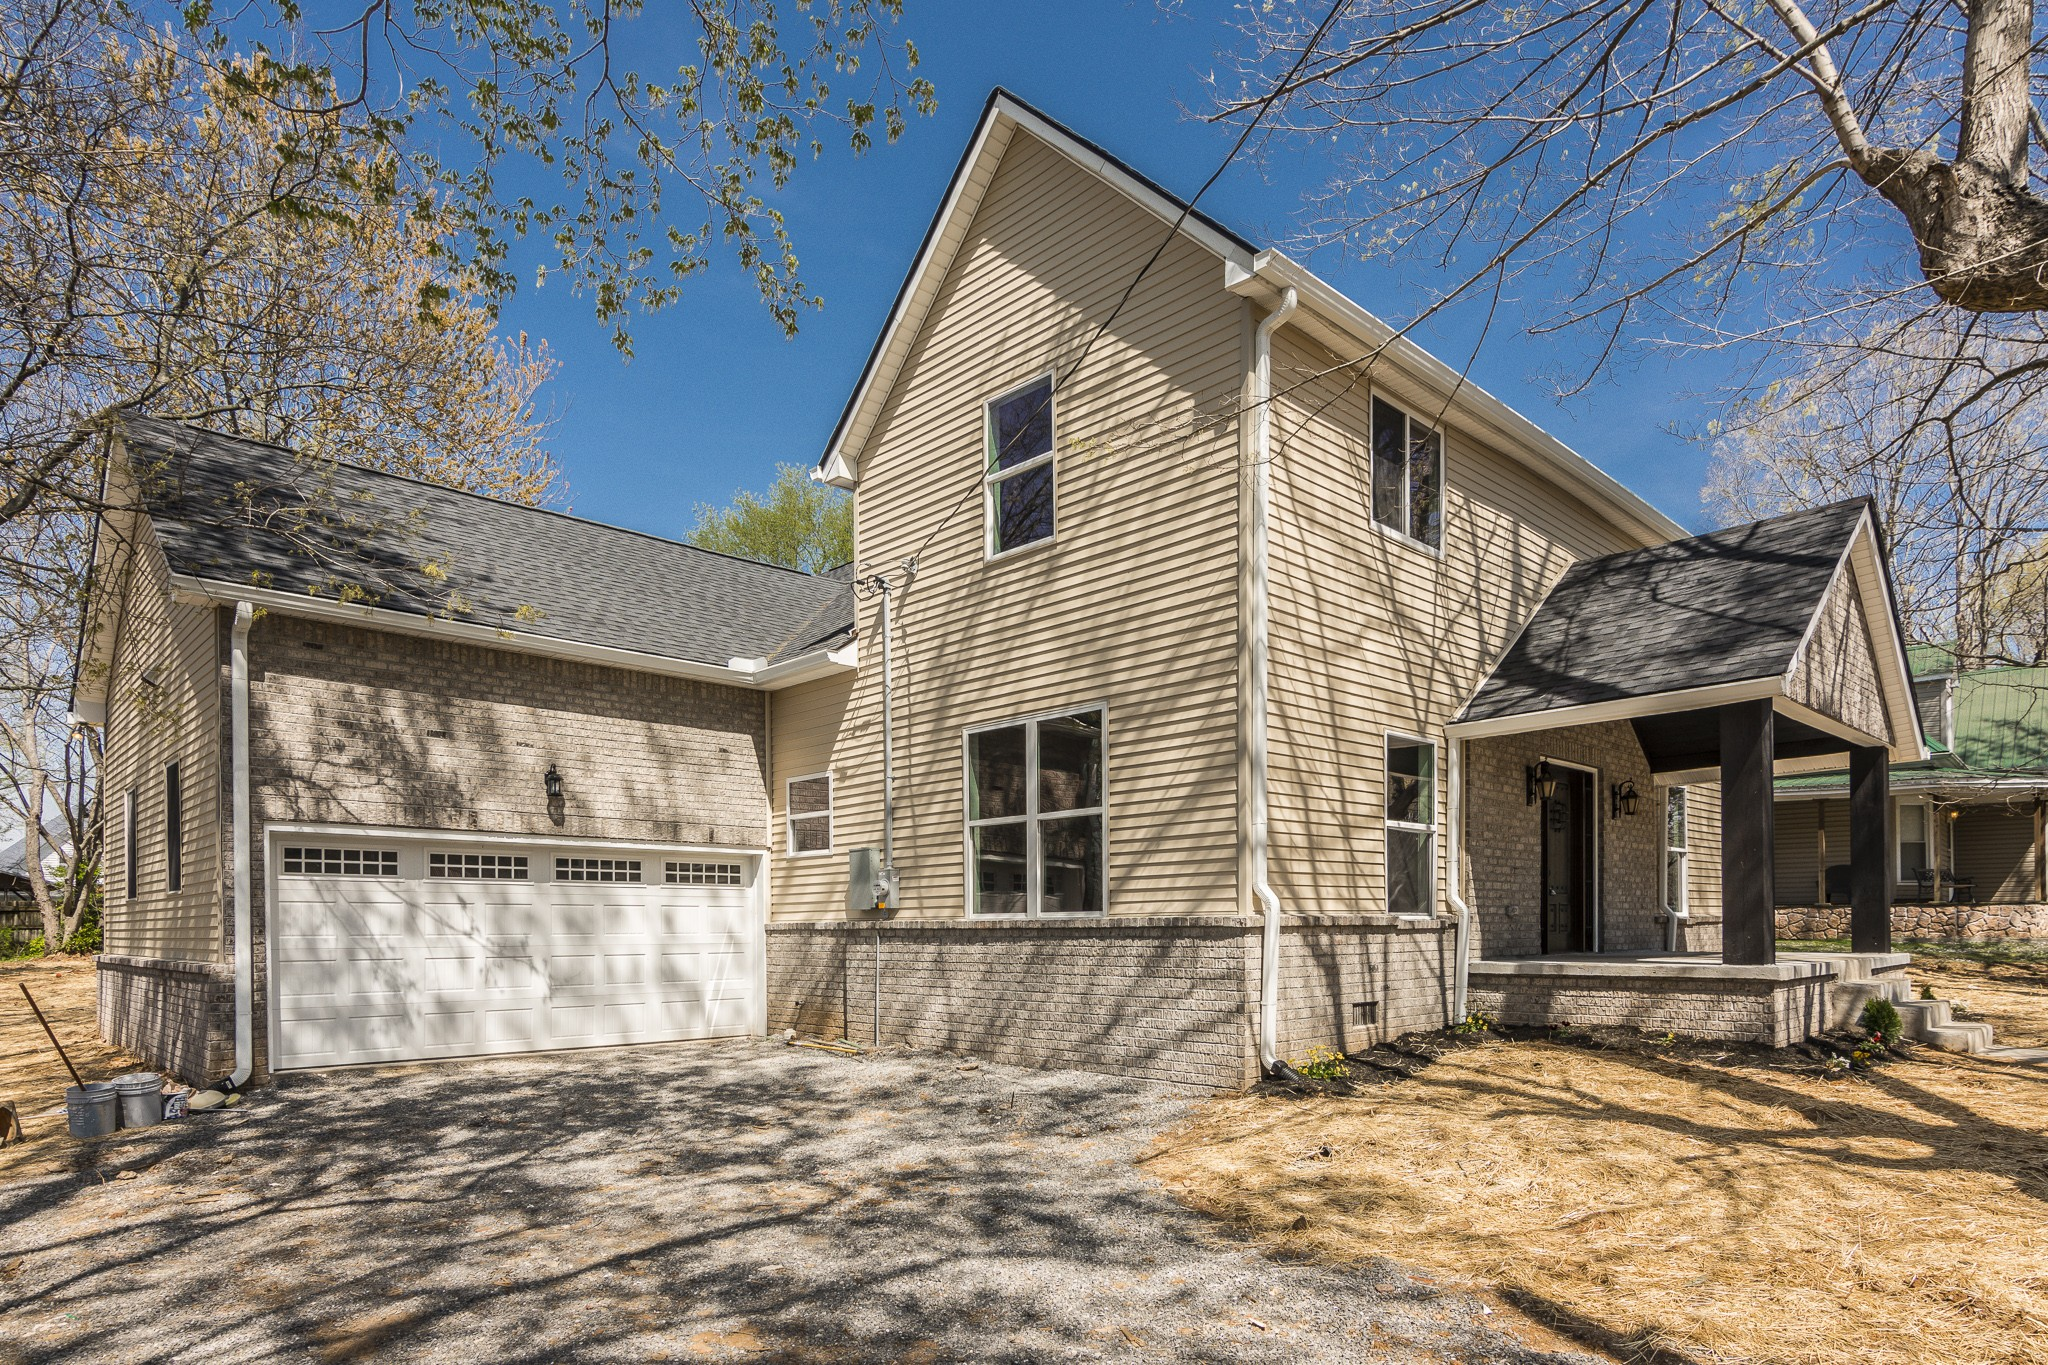 206 S Russell St S Property Photo - Portland, TN real estate listing